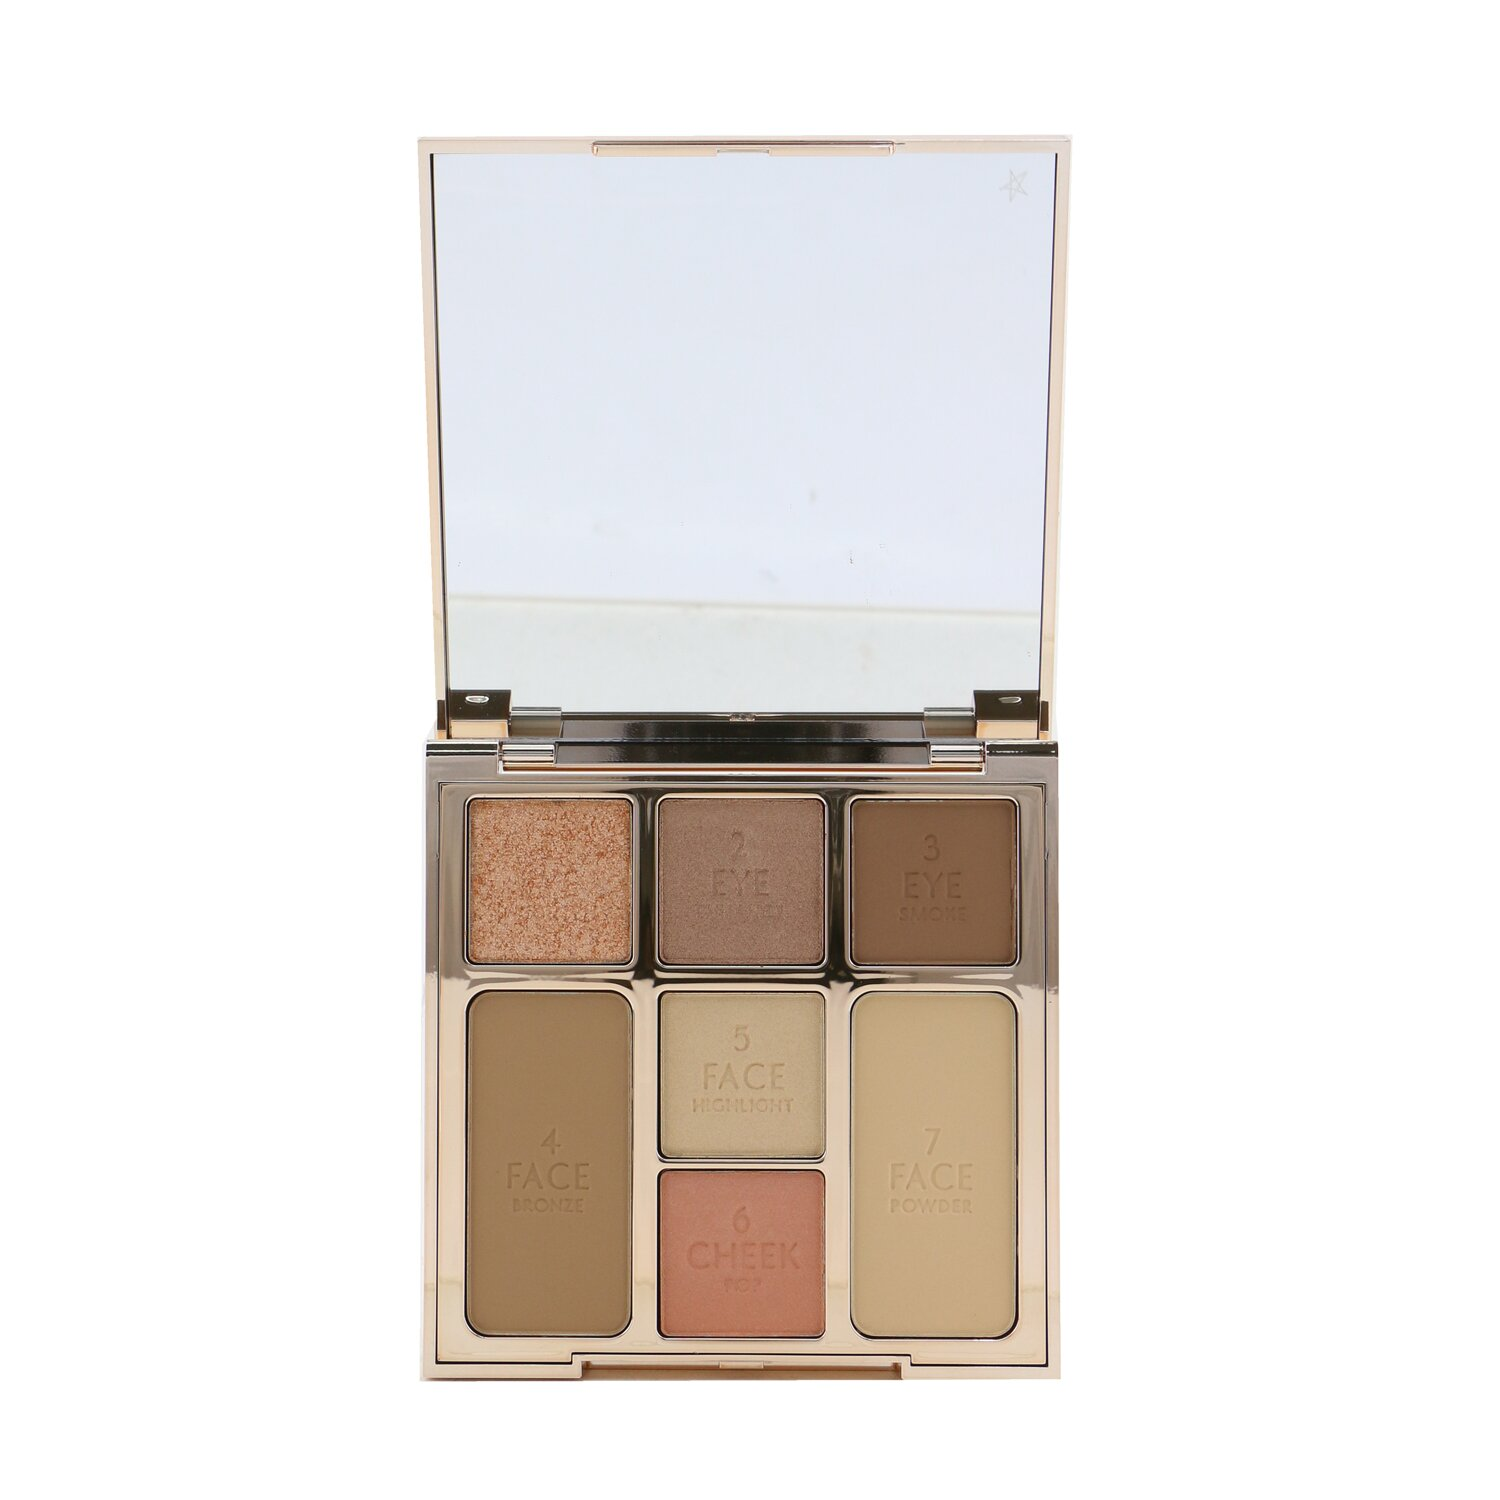 Buy CHARLOTTE TILBURY - Instant Look Of Love Look In A Palette (1x Powder, 1x Blush, 1x Highlight, 1x Bronzer, 3x Eye Color) - # Pretty Blushed Beauty 21.5g/0.75oz Singapore